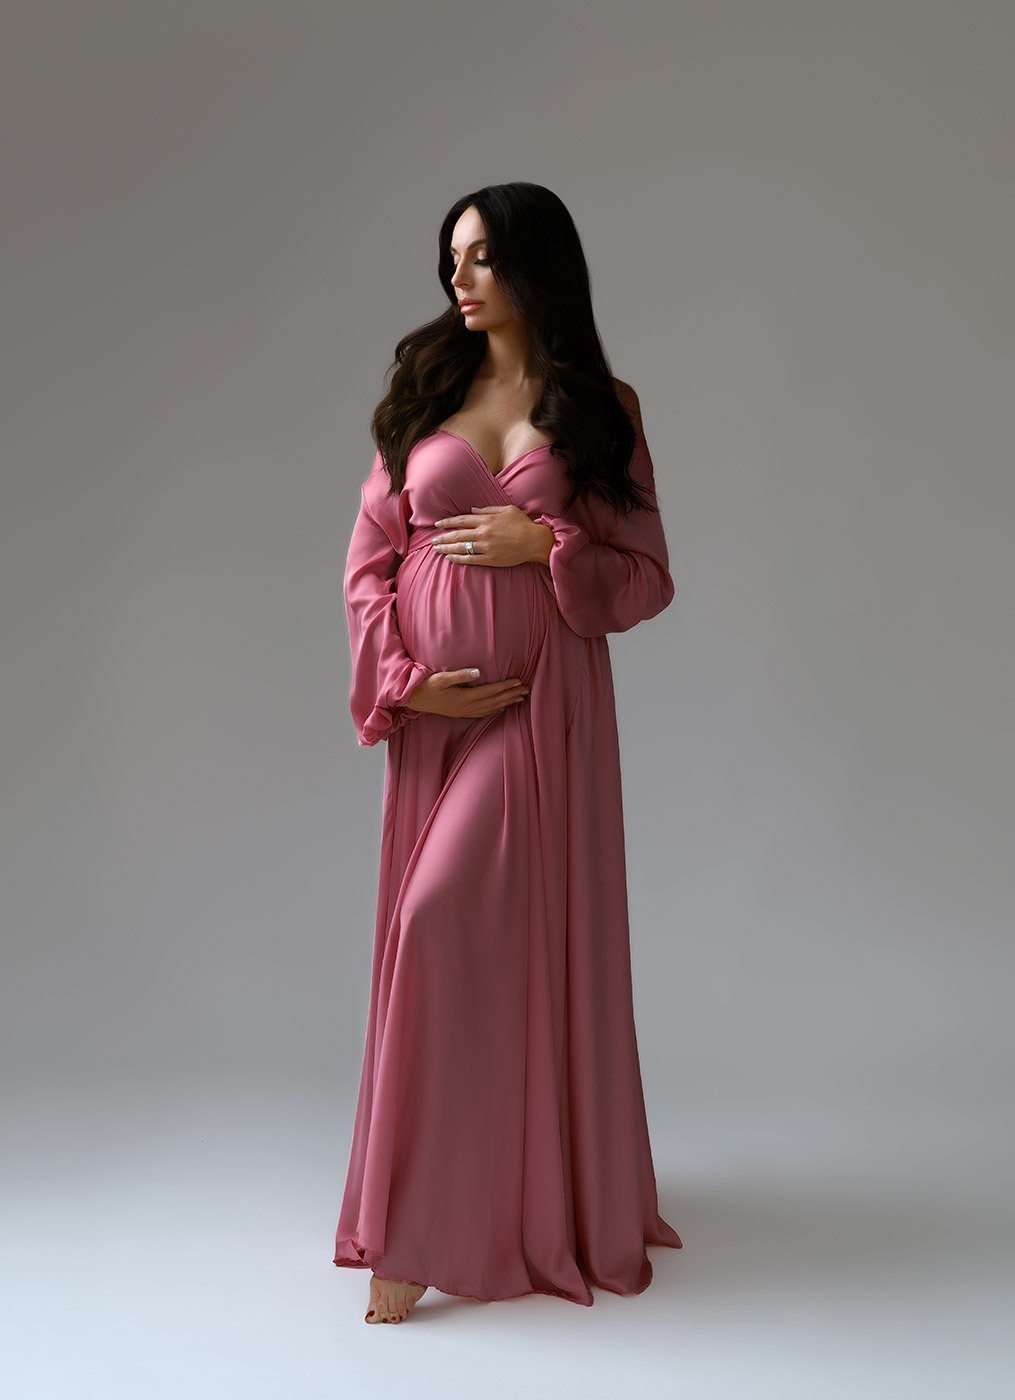 pregnant woman in rose dress captured at nyc maternity photo studio